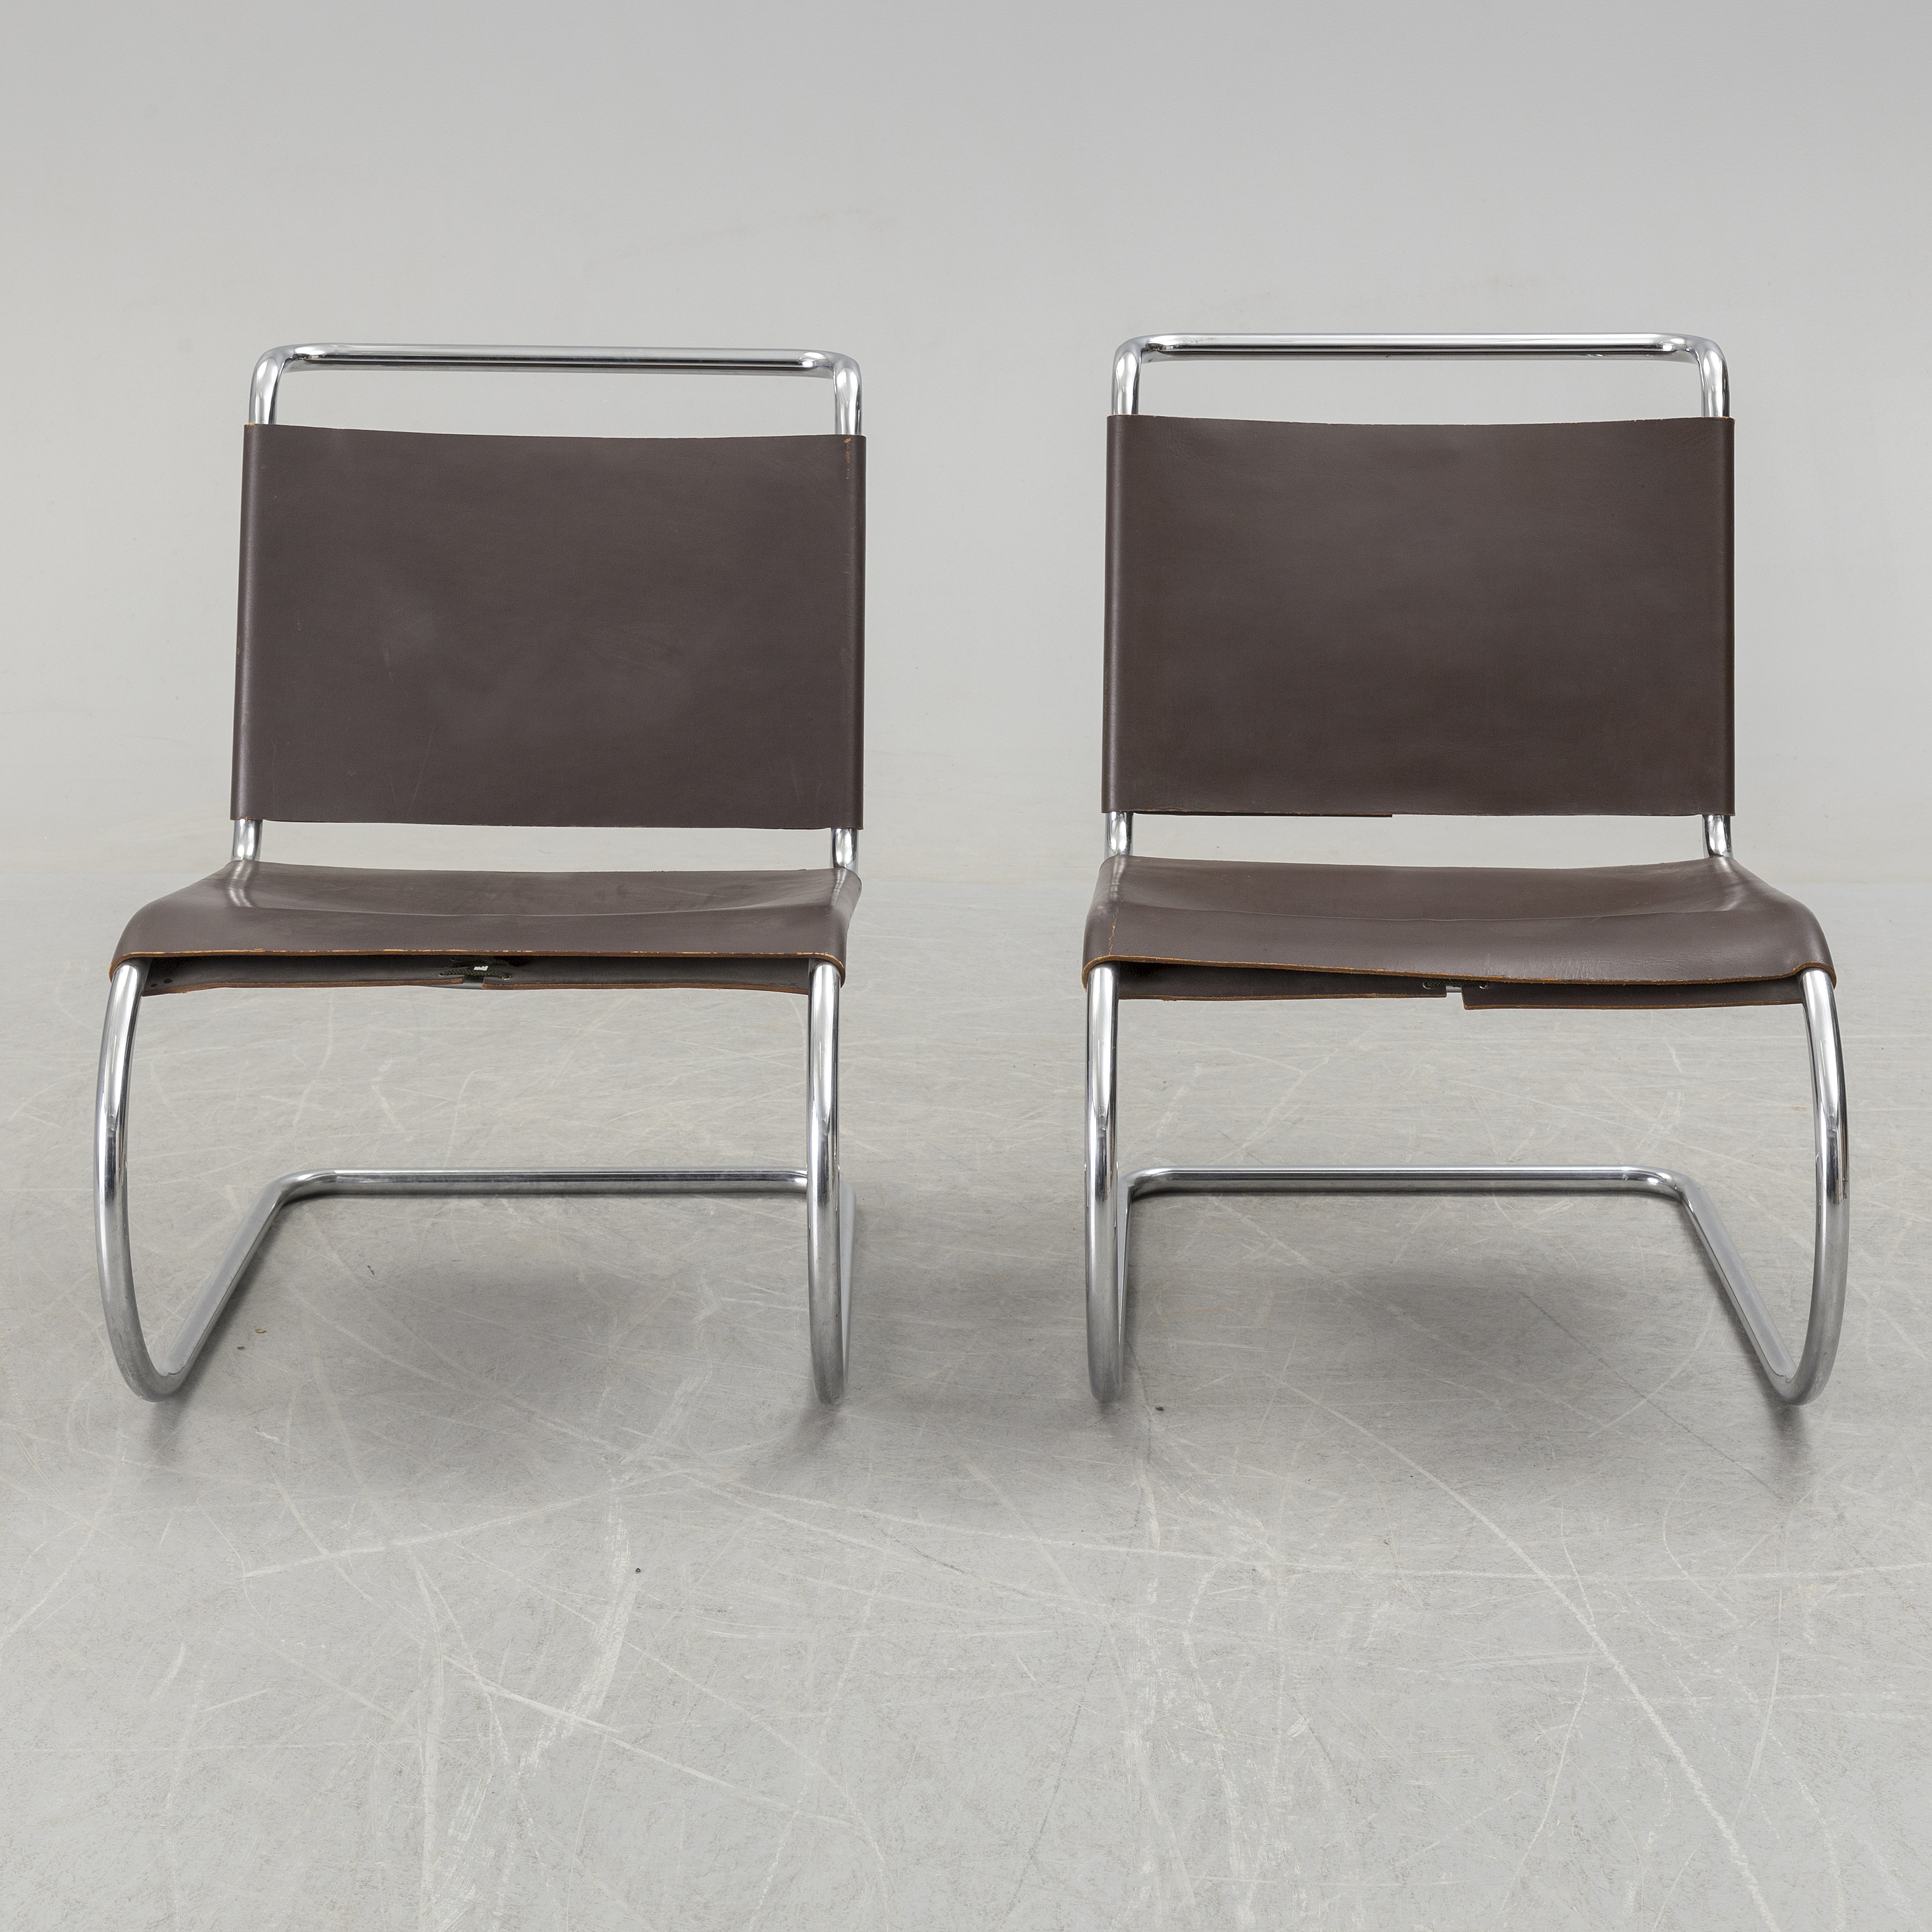 Miraculous A Pair Of Mr Lounge Chairs By Ludwig Mies Van Der Rohe Squirreltailoven Fun Painted Chair Ideas Images Squirreltailovenorg